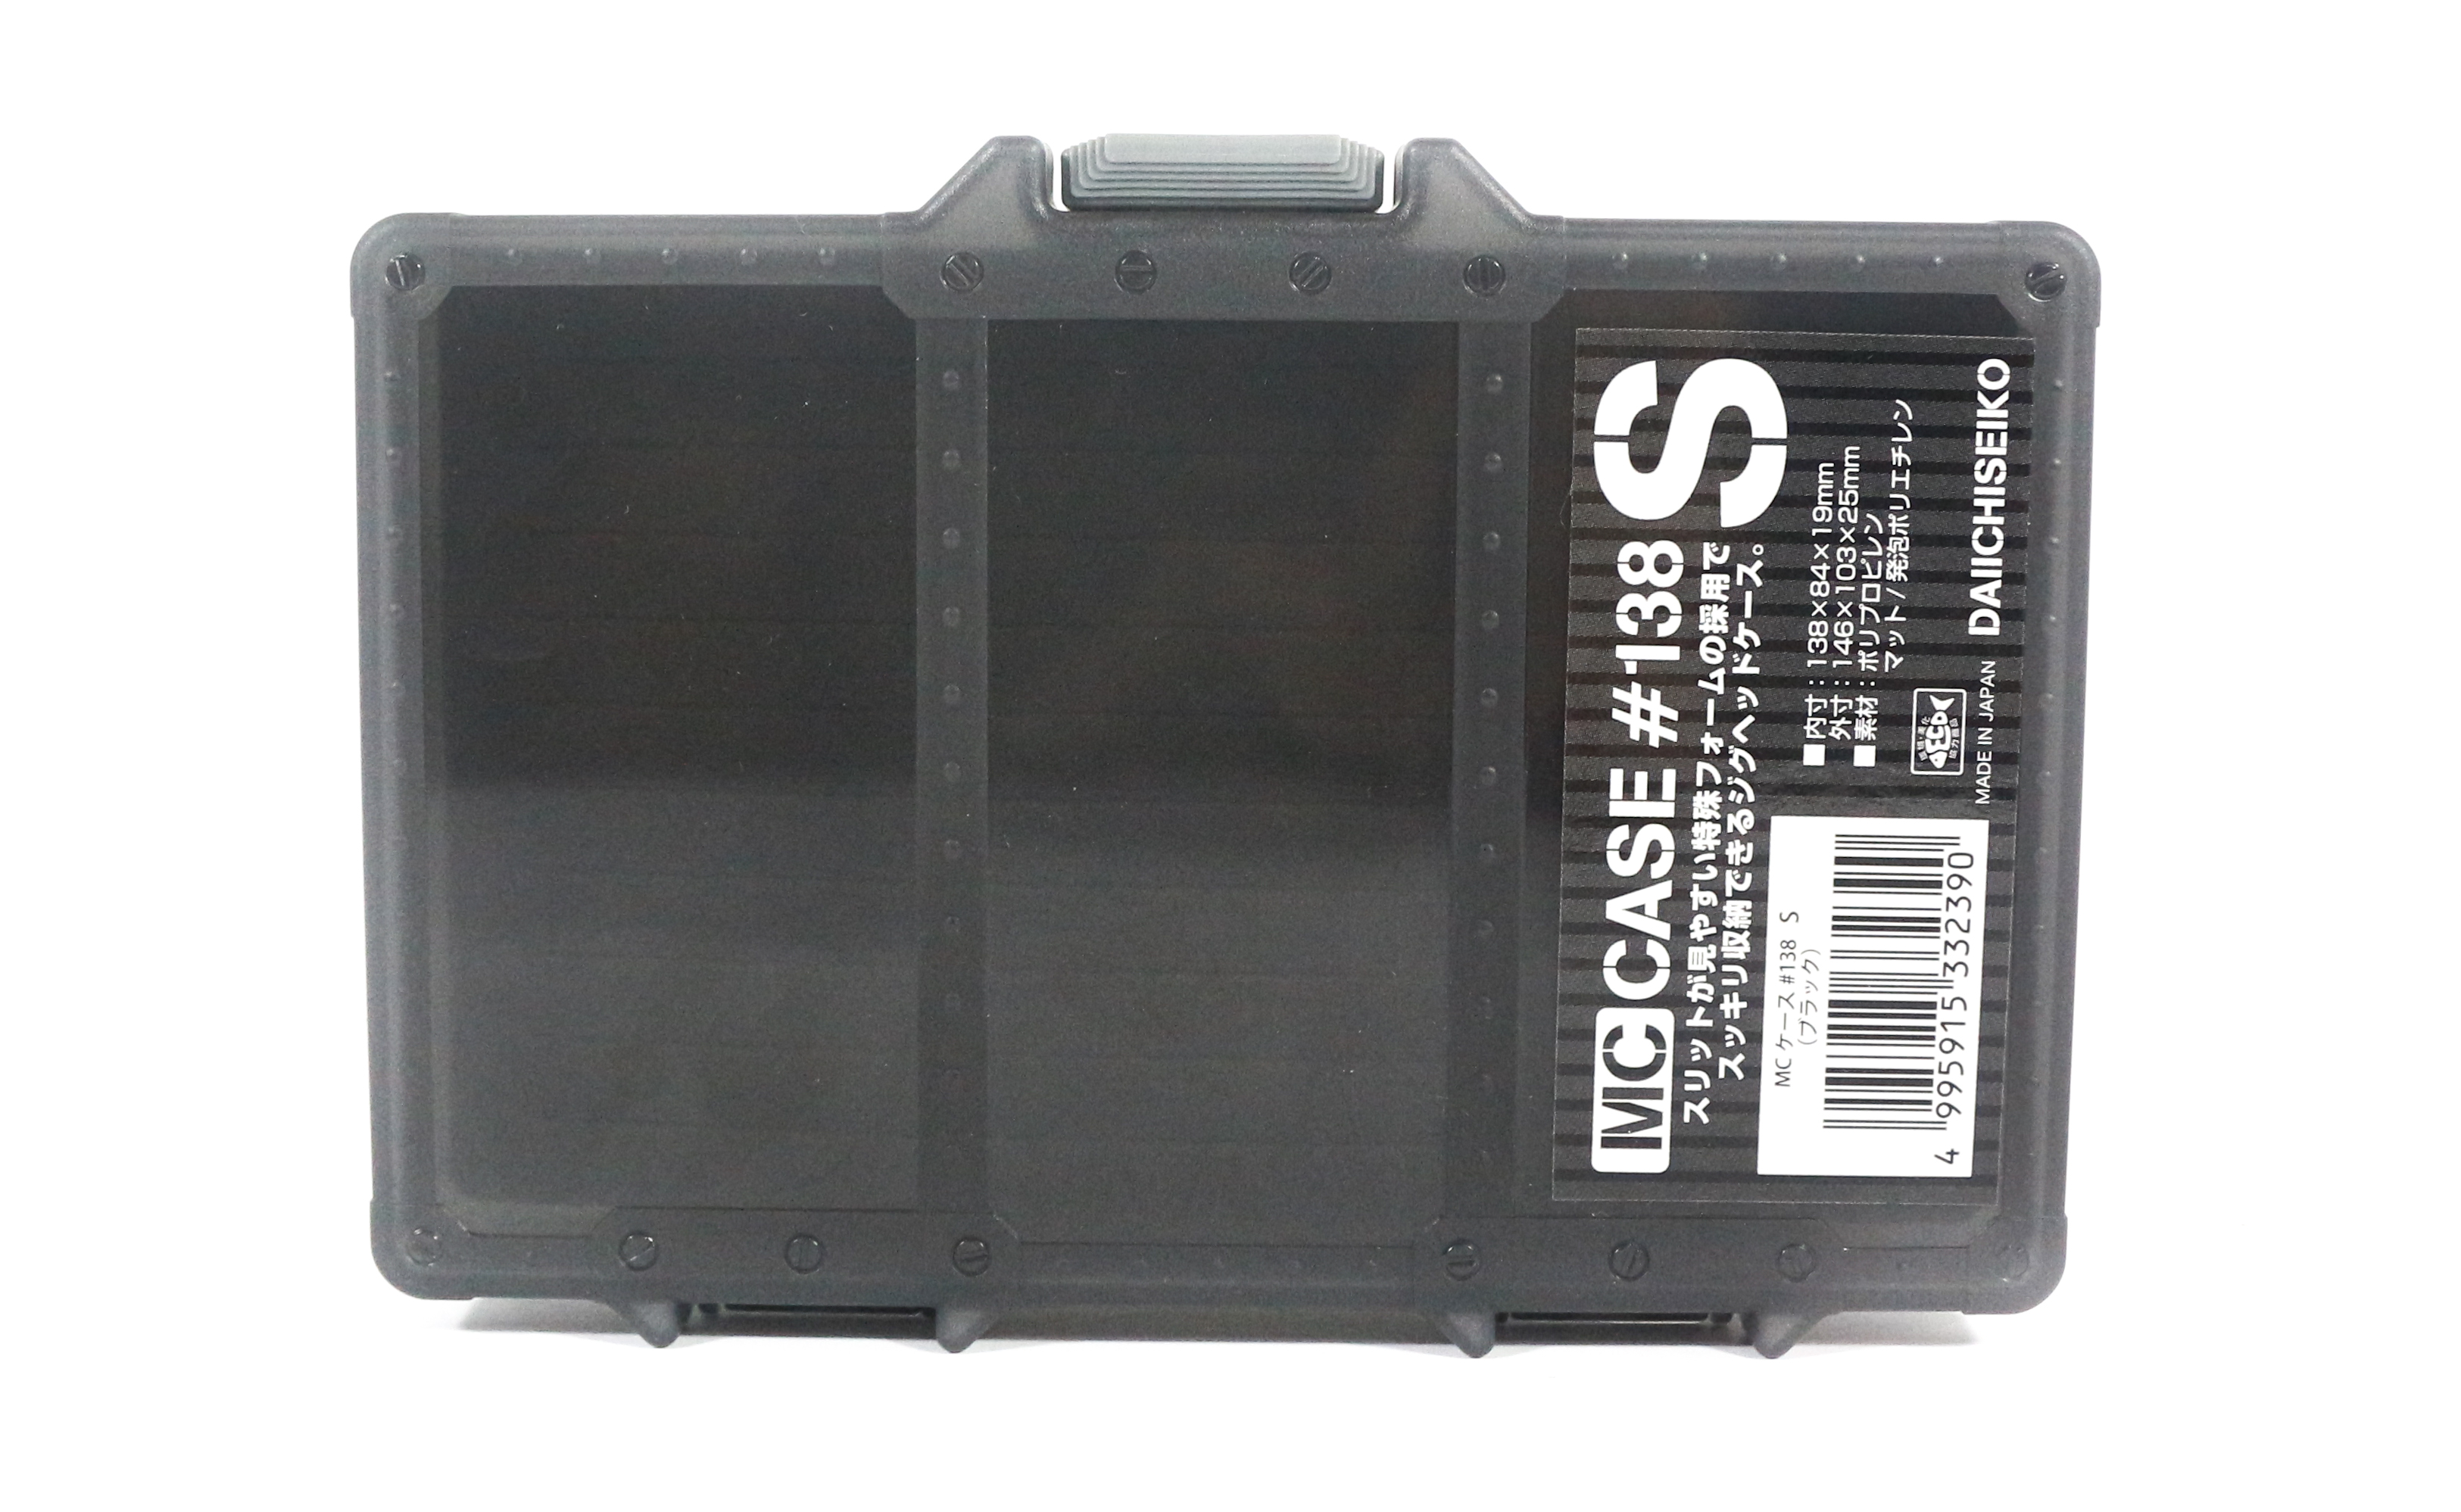 Daiichi #33239 MC Case #138S Slit Foam Box 146 x 103 x 25 mm Black (2390)